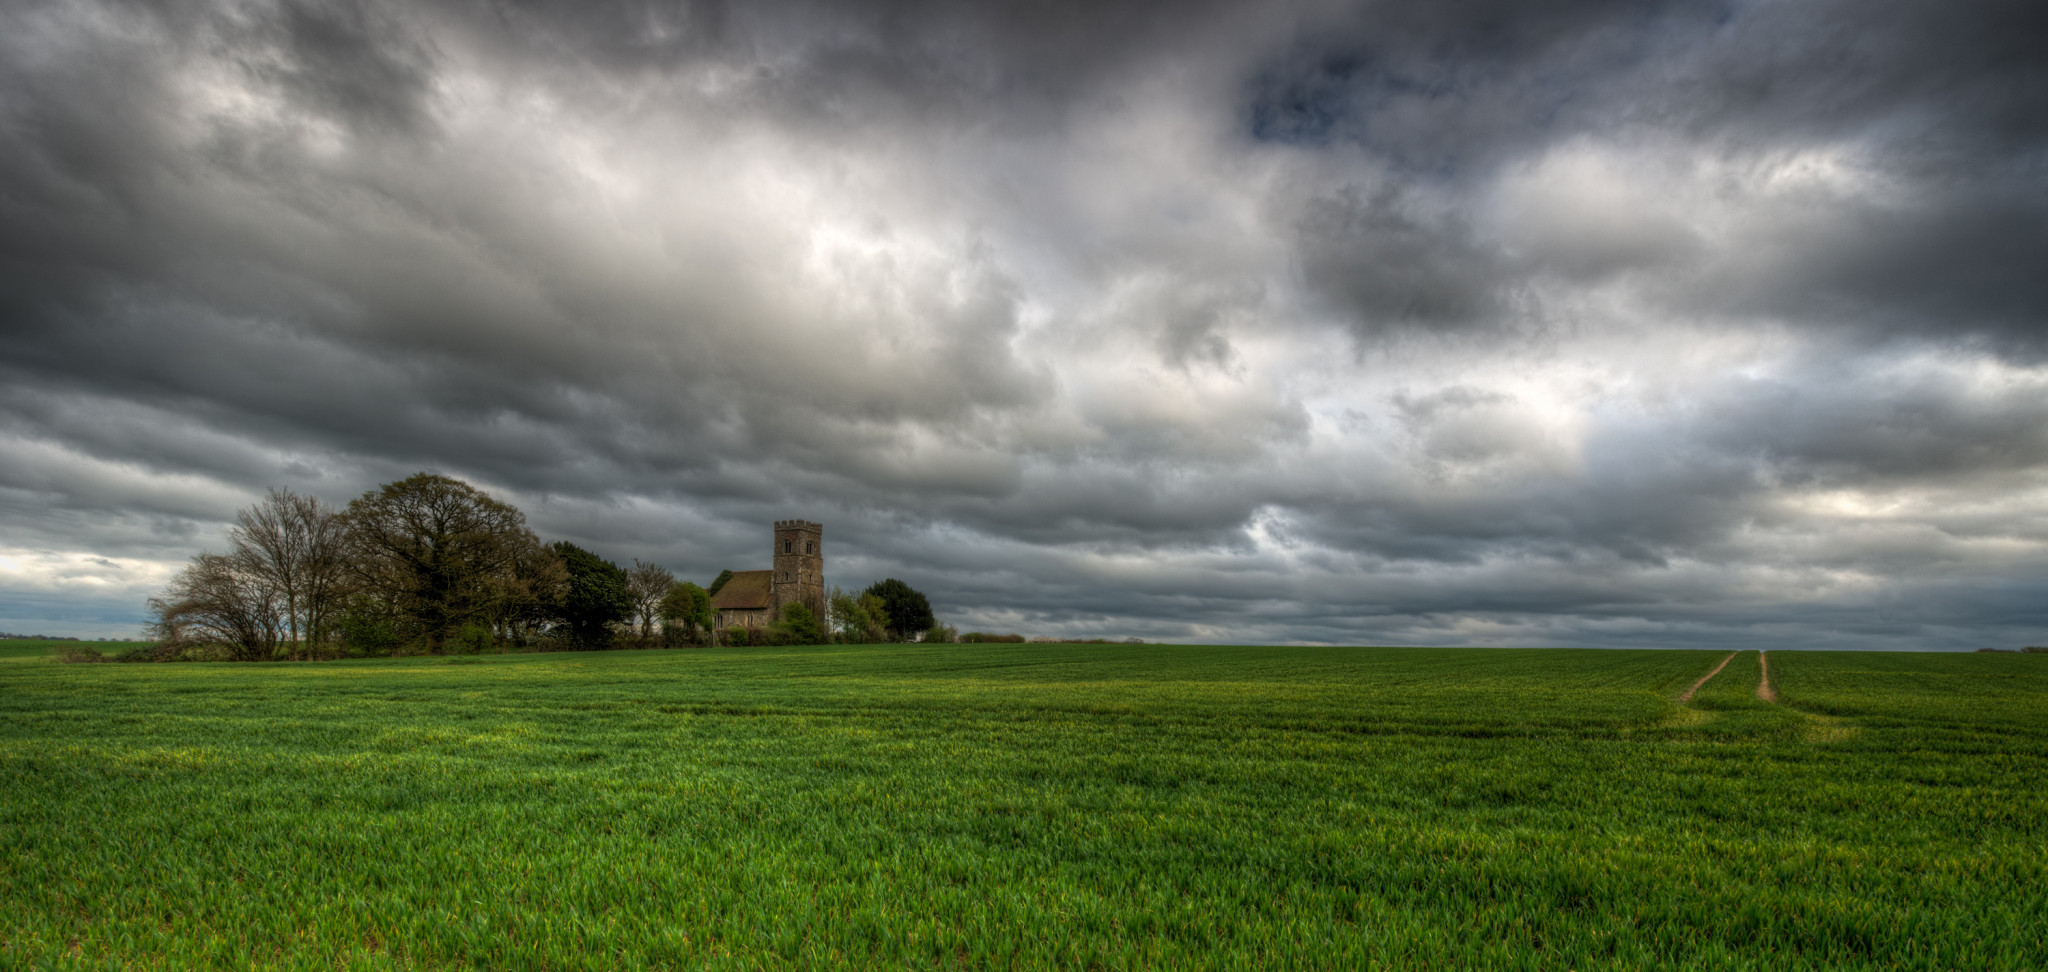 St Boltolphs Church and surrounding Landscape